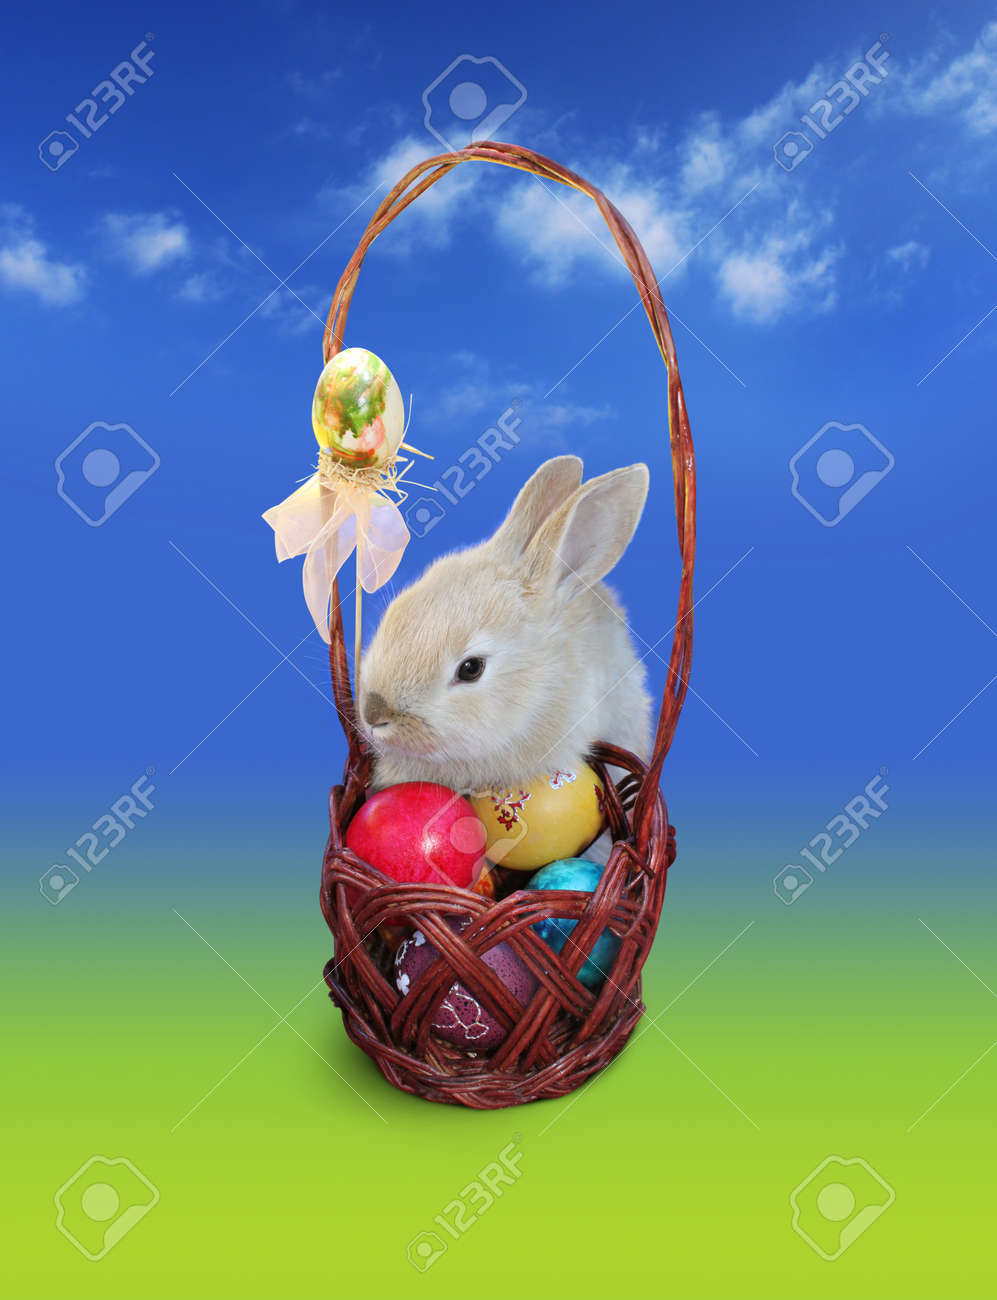 Cute Easter bunny with Easter eggs basket, isolated over blue - green background - 12632520